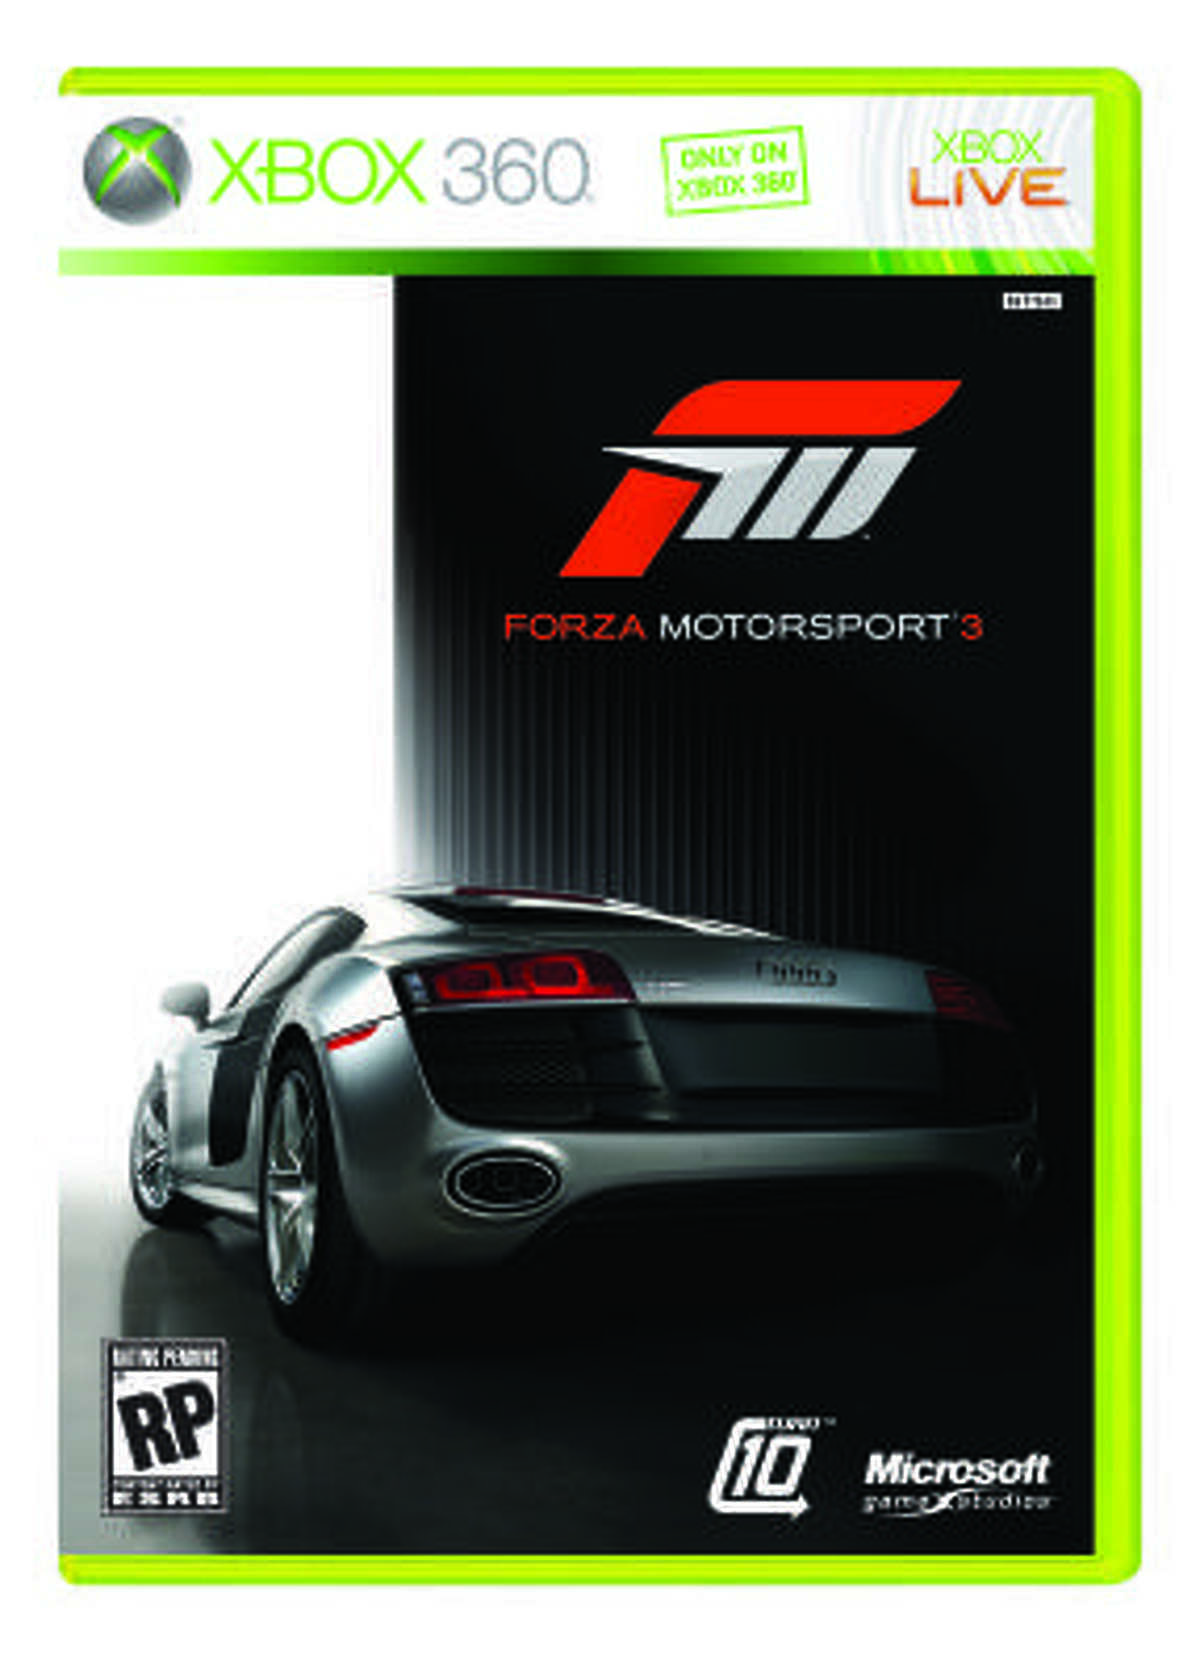 Xbox 360: Forza Motorsport 3 Microsoft; Rated E for Everyone; $59.99 Forza 3 is a serious racer that is also a family-friendly. It's rated E for Everyone and offers players the chance to race on their own terms. Anyone can pick it up, race some and find themselves comfortable behind the wheel of Ferraris, Bentleys, even an R-34 Skyline. Turn 10 wanted to make a game where